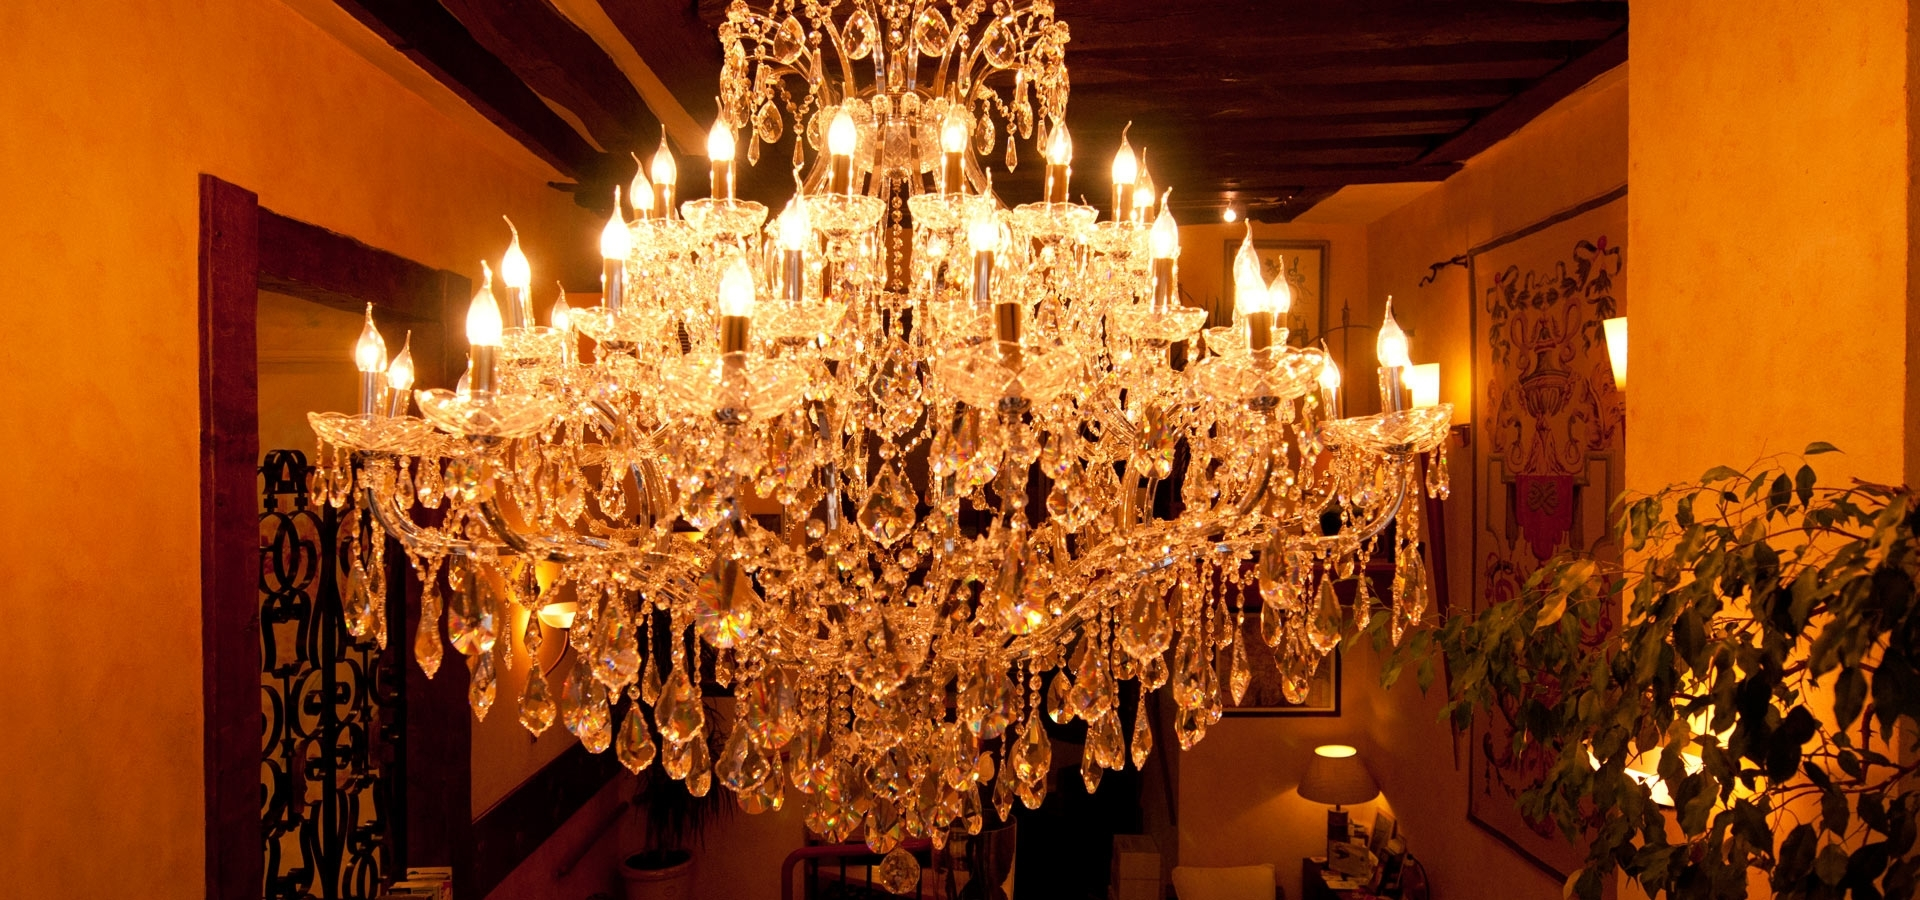 Popular Hotel Chandelier With Centrale Ecole Hotel 3* › Hotel Ecole Centrale (View 6 of 20)